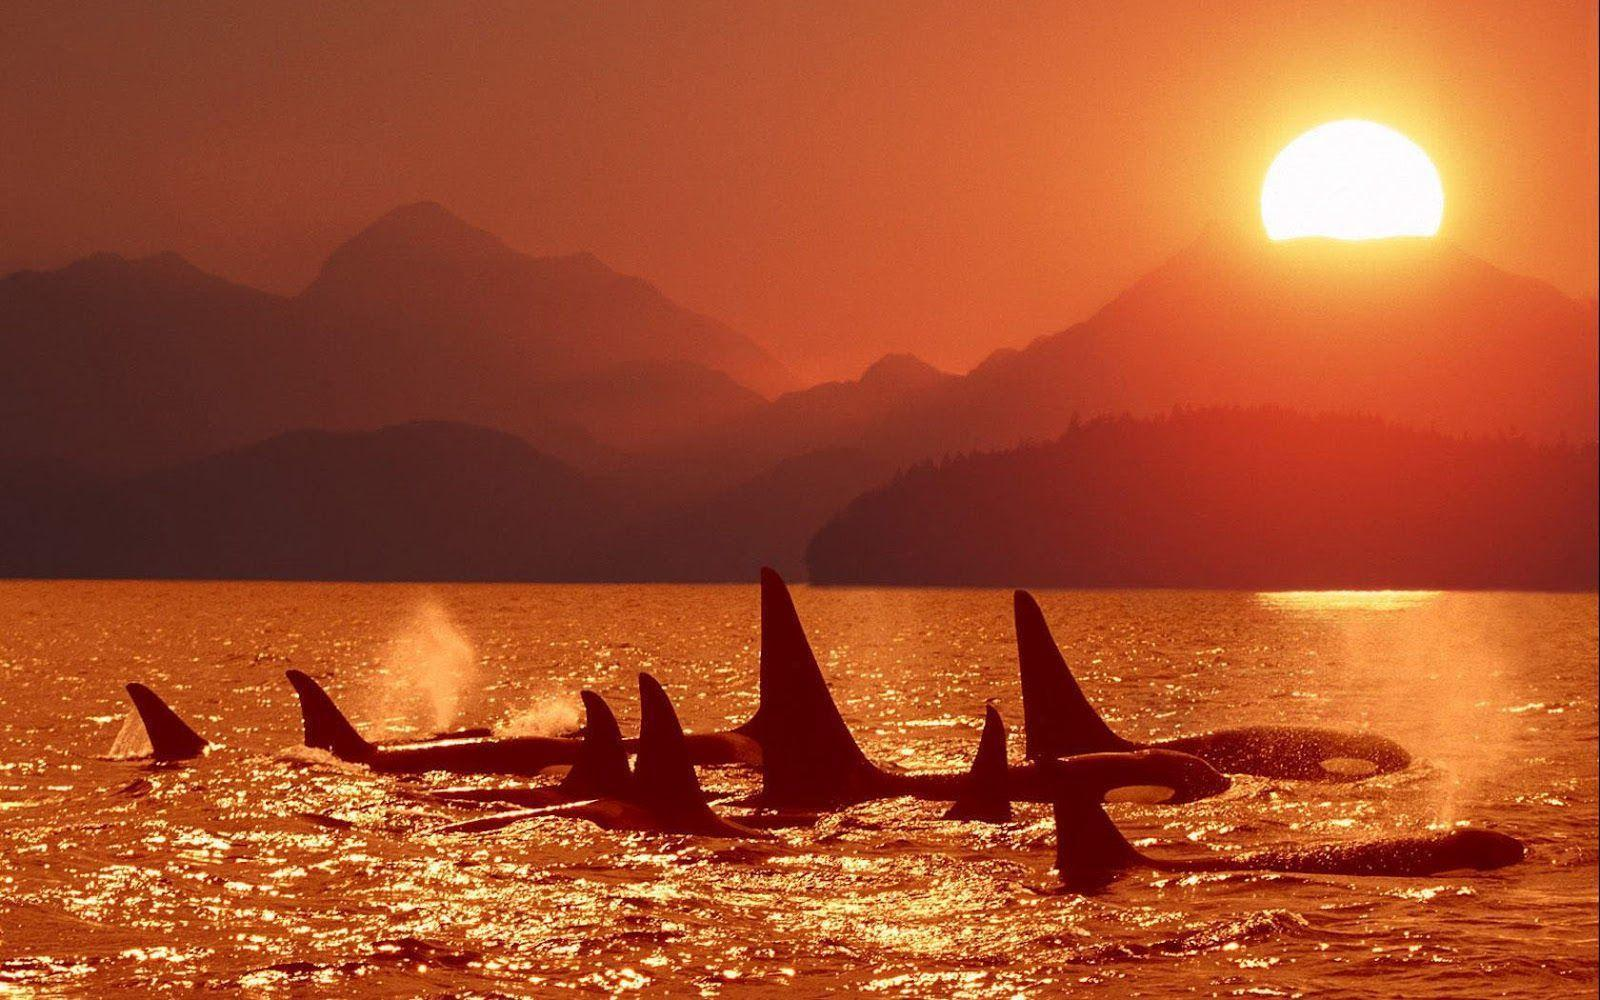 Killer Whales Wallpaper Images & Pictures - Becuo